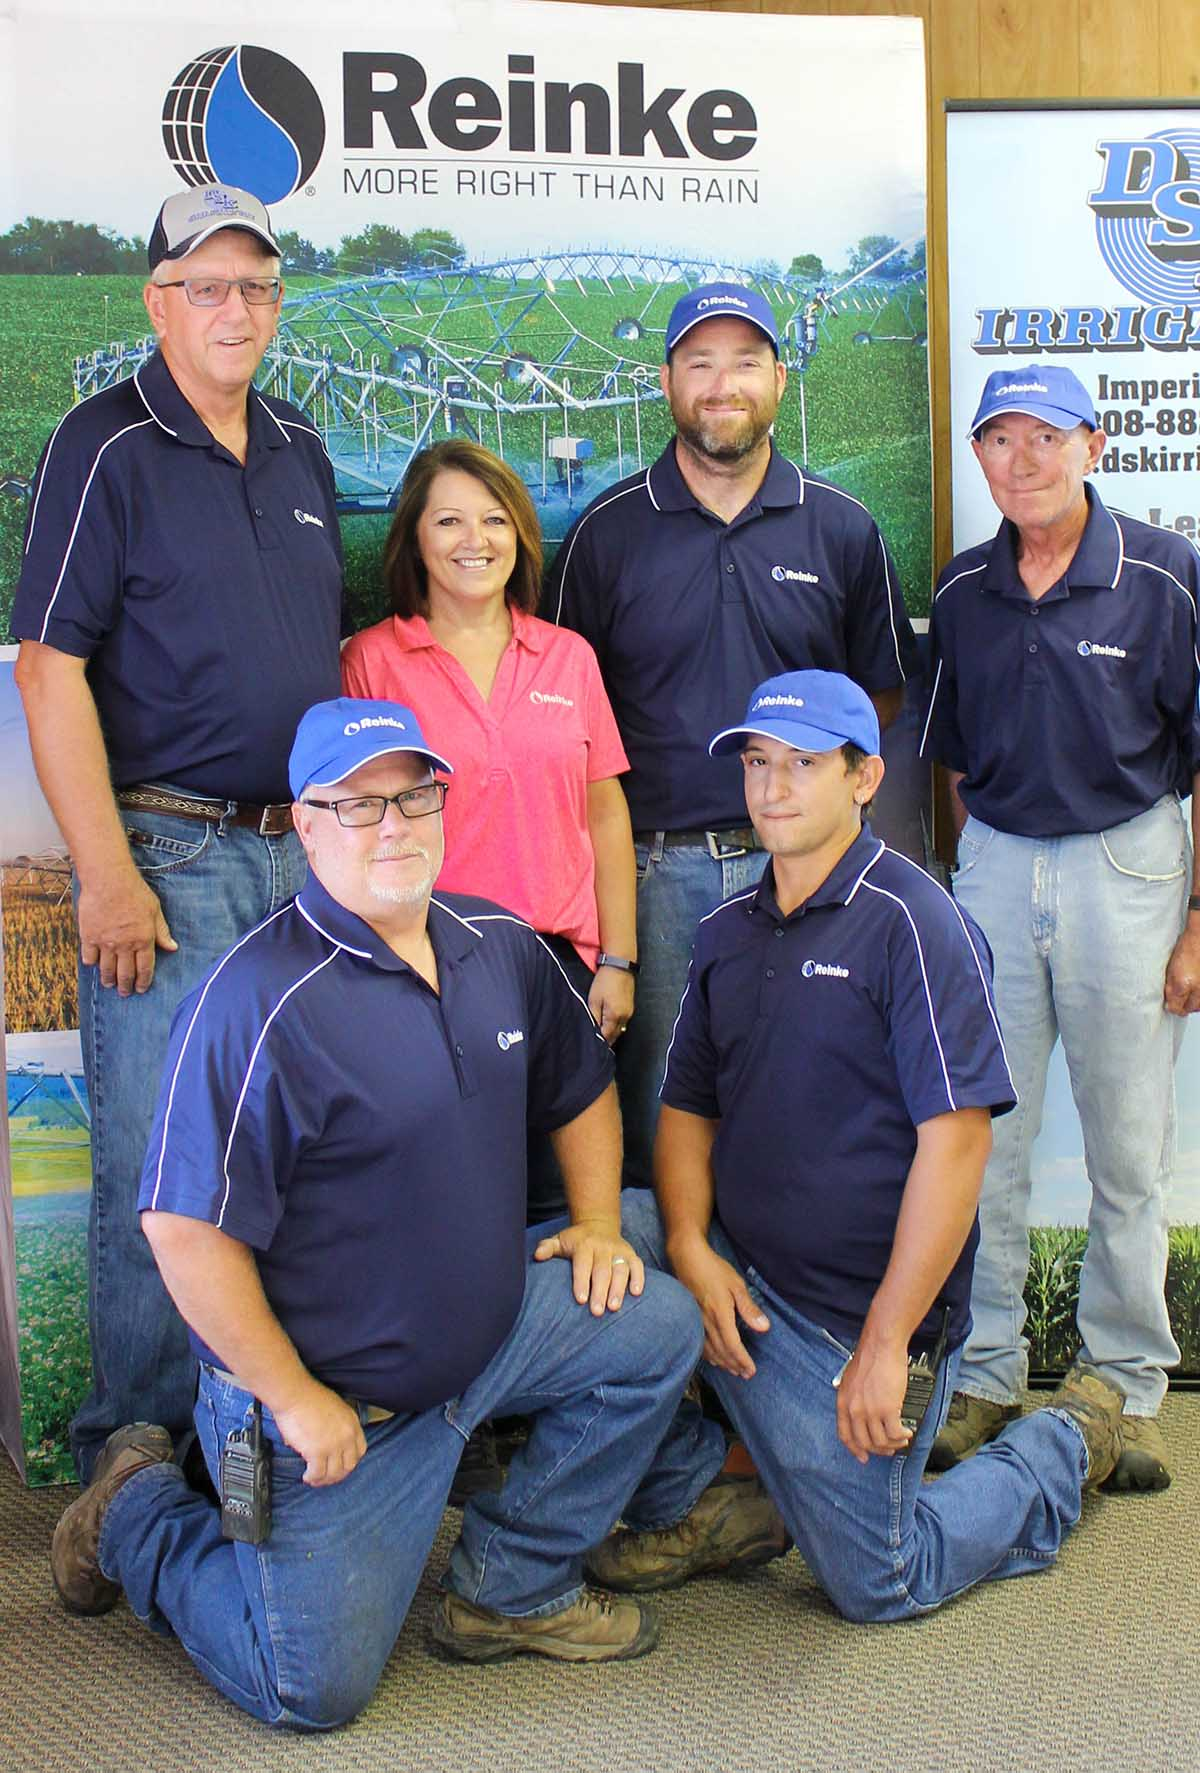 Our team of Service Technicians at DSK Irrigation in Imperial, Nebraska